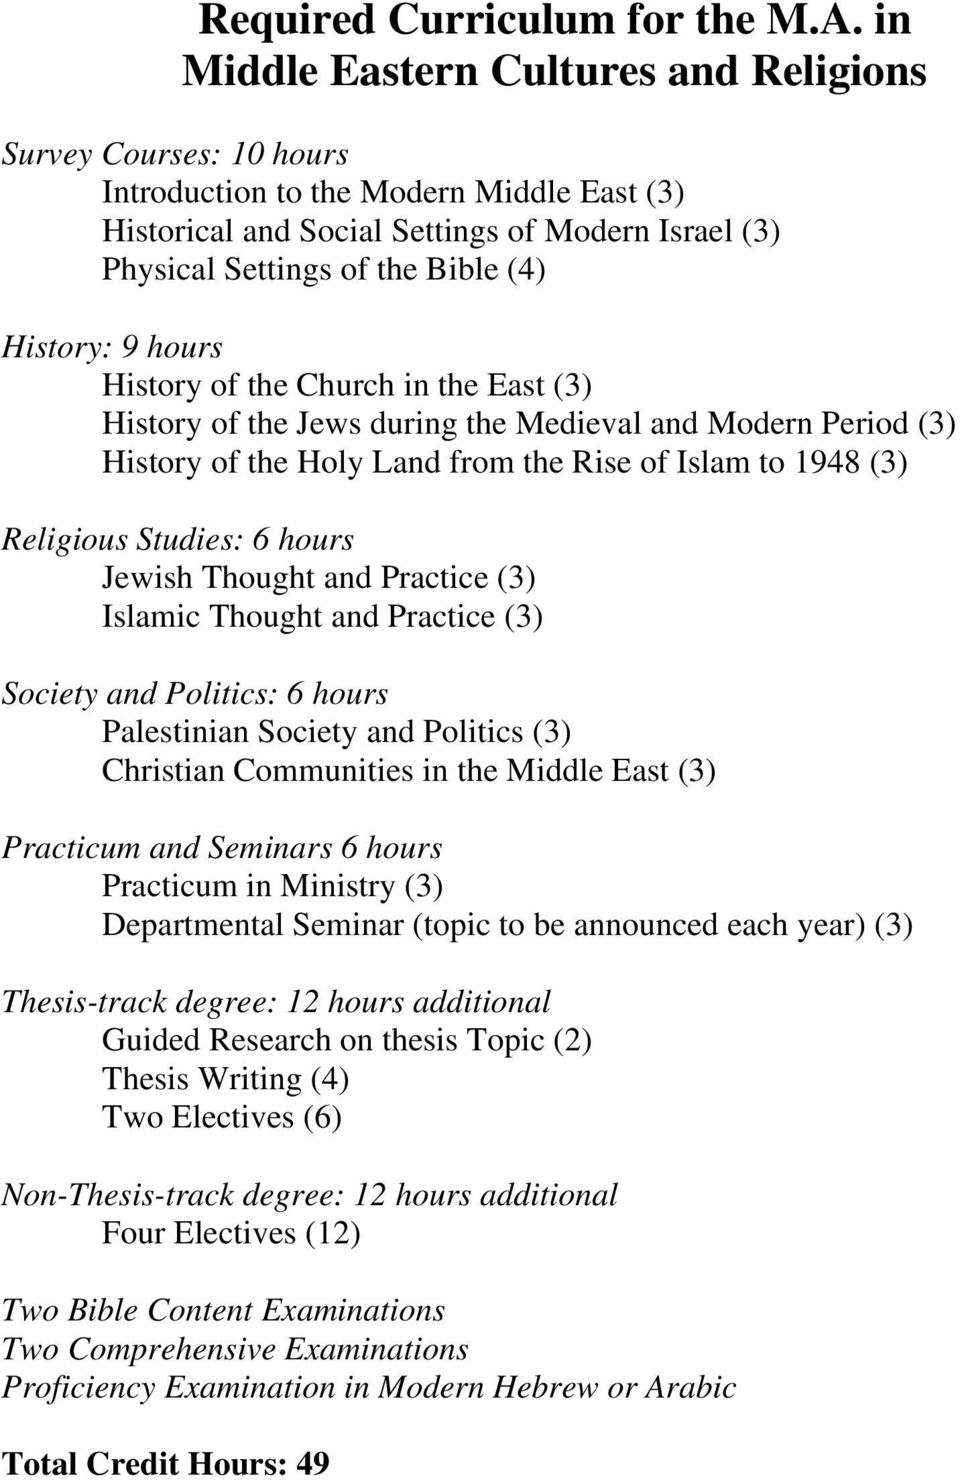 in the East (3) History of the Jews during the Medieval and Modern Period (3) History of the Holy Land from the Rise of Islam to 1948 (3) Religious Studies: 6 hours Jewish Thought and Practice (3)